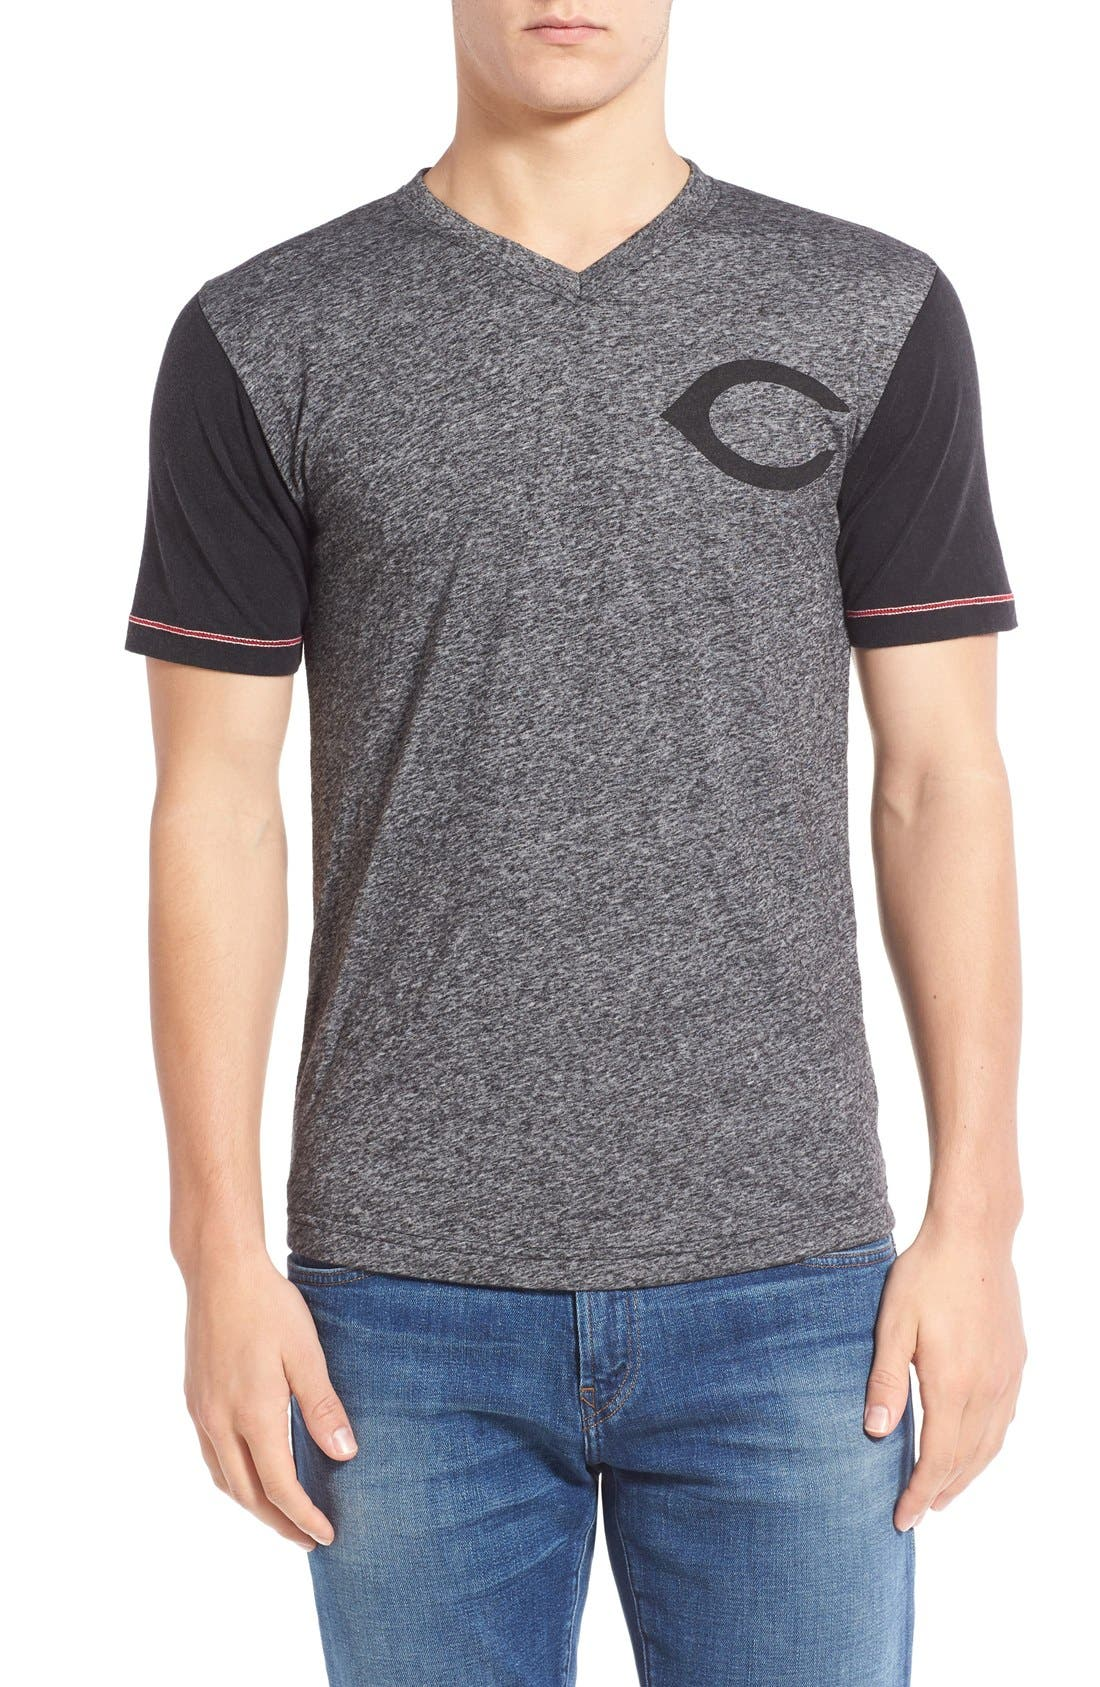 RED JACKET,                             'Cincinnati Reds - Onyx' Trim Fit V-Neck T-Shirt,                             Main thumbnail 1, color,                             019